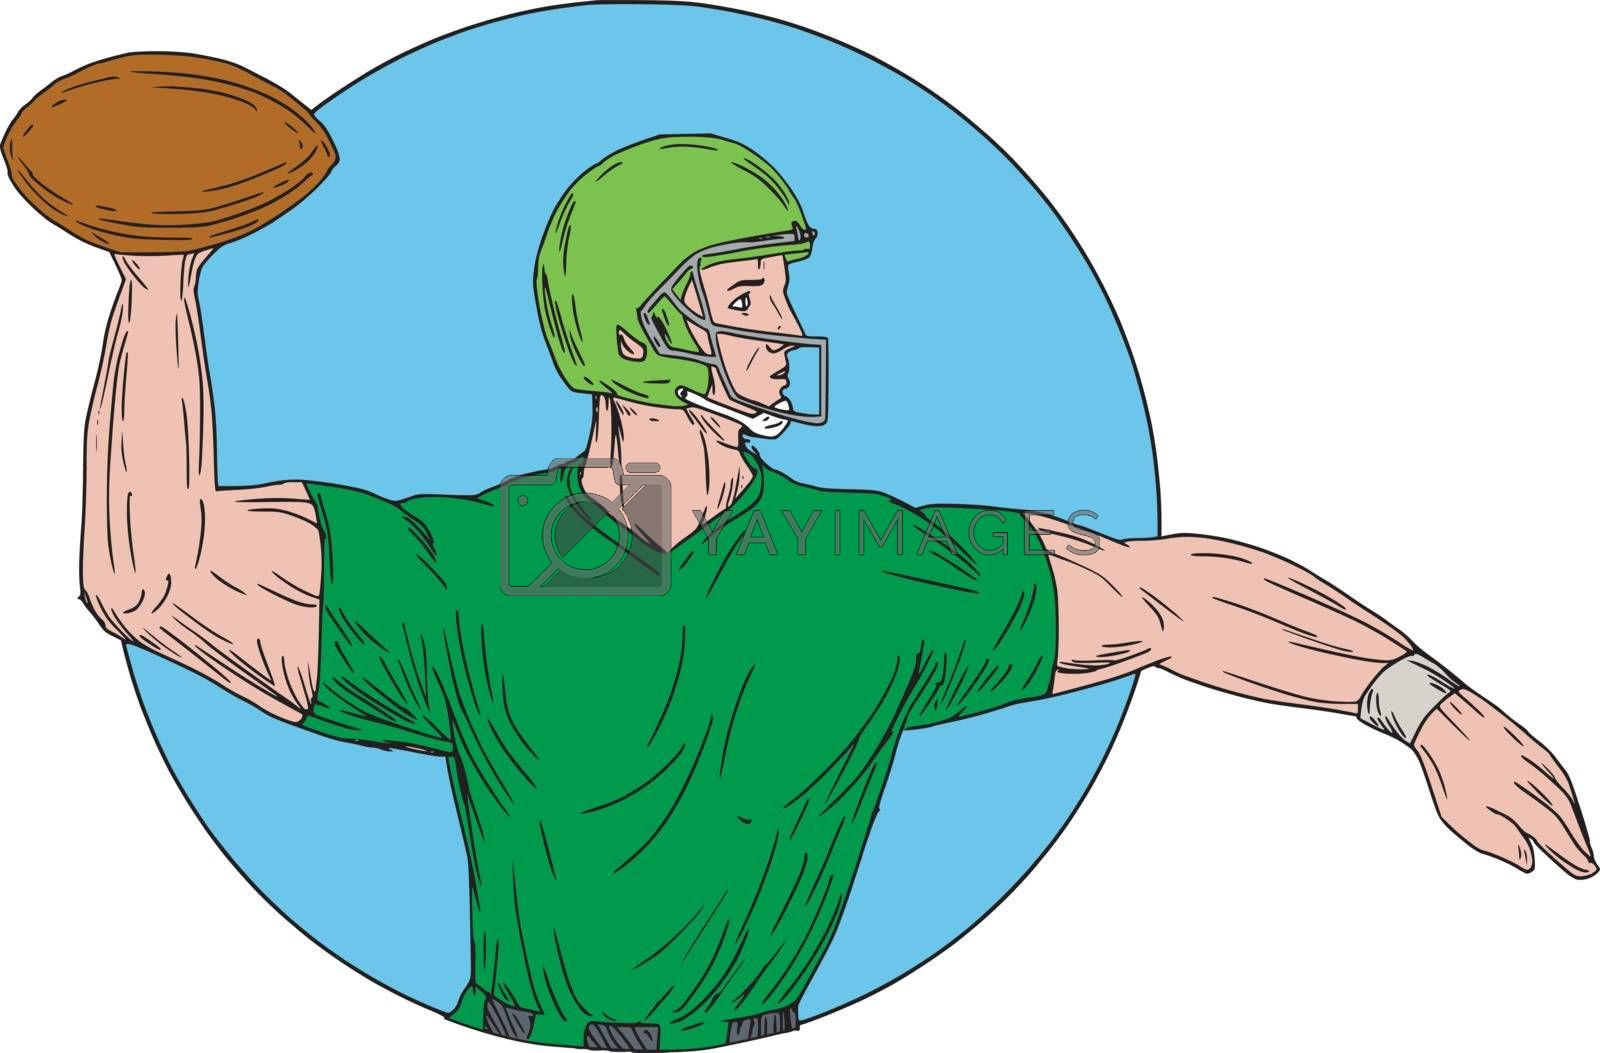 Drawing sketch style illustration of an american football gridiron quarterback player arms stretched throwing ball viewed from the side set inside circle on isolated background.